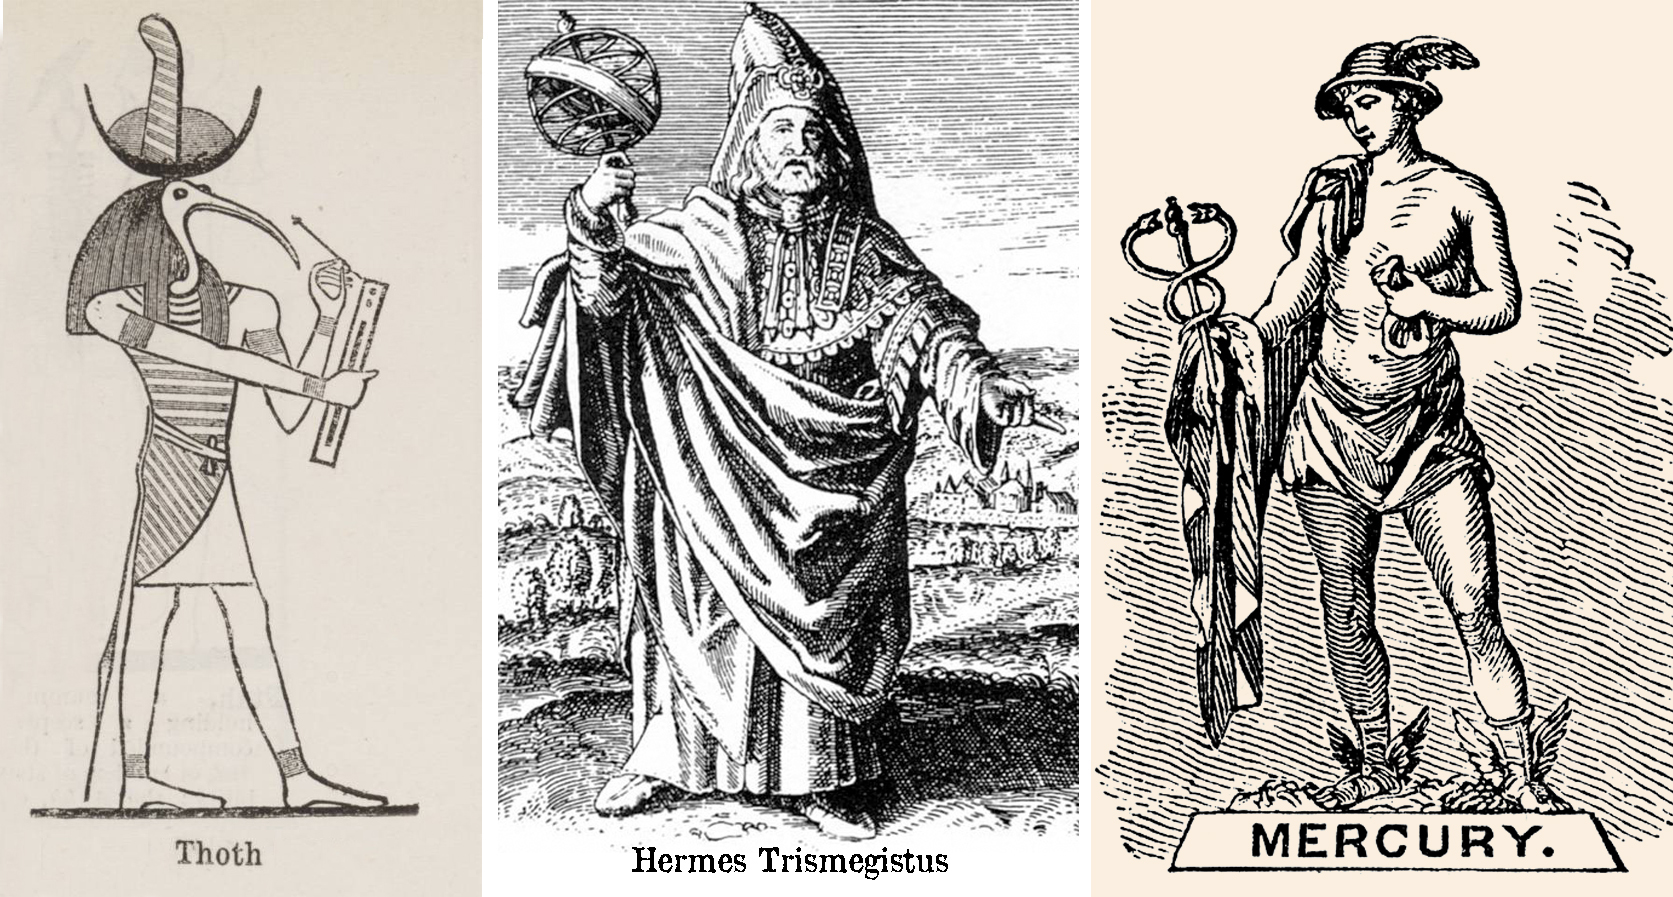 The many faces of Thoth, as himself, Hermes Trismegistus, and Mercury.